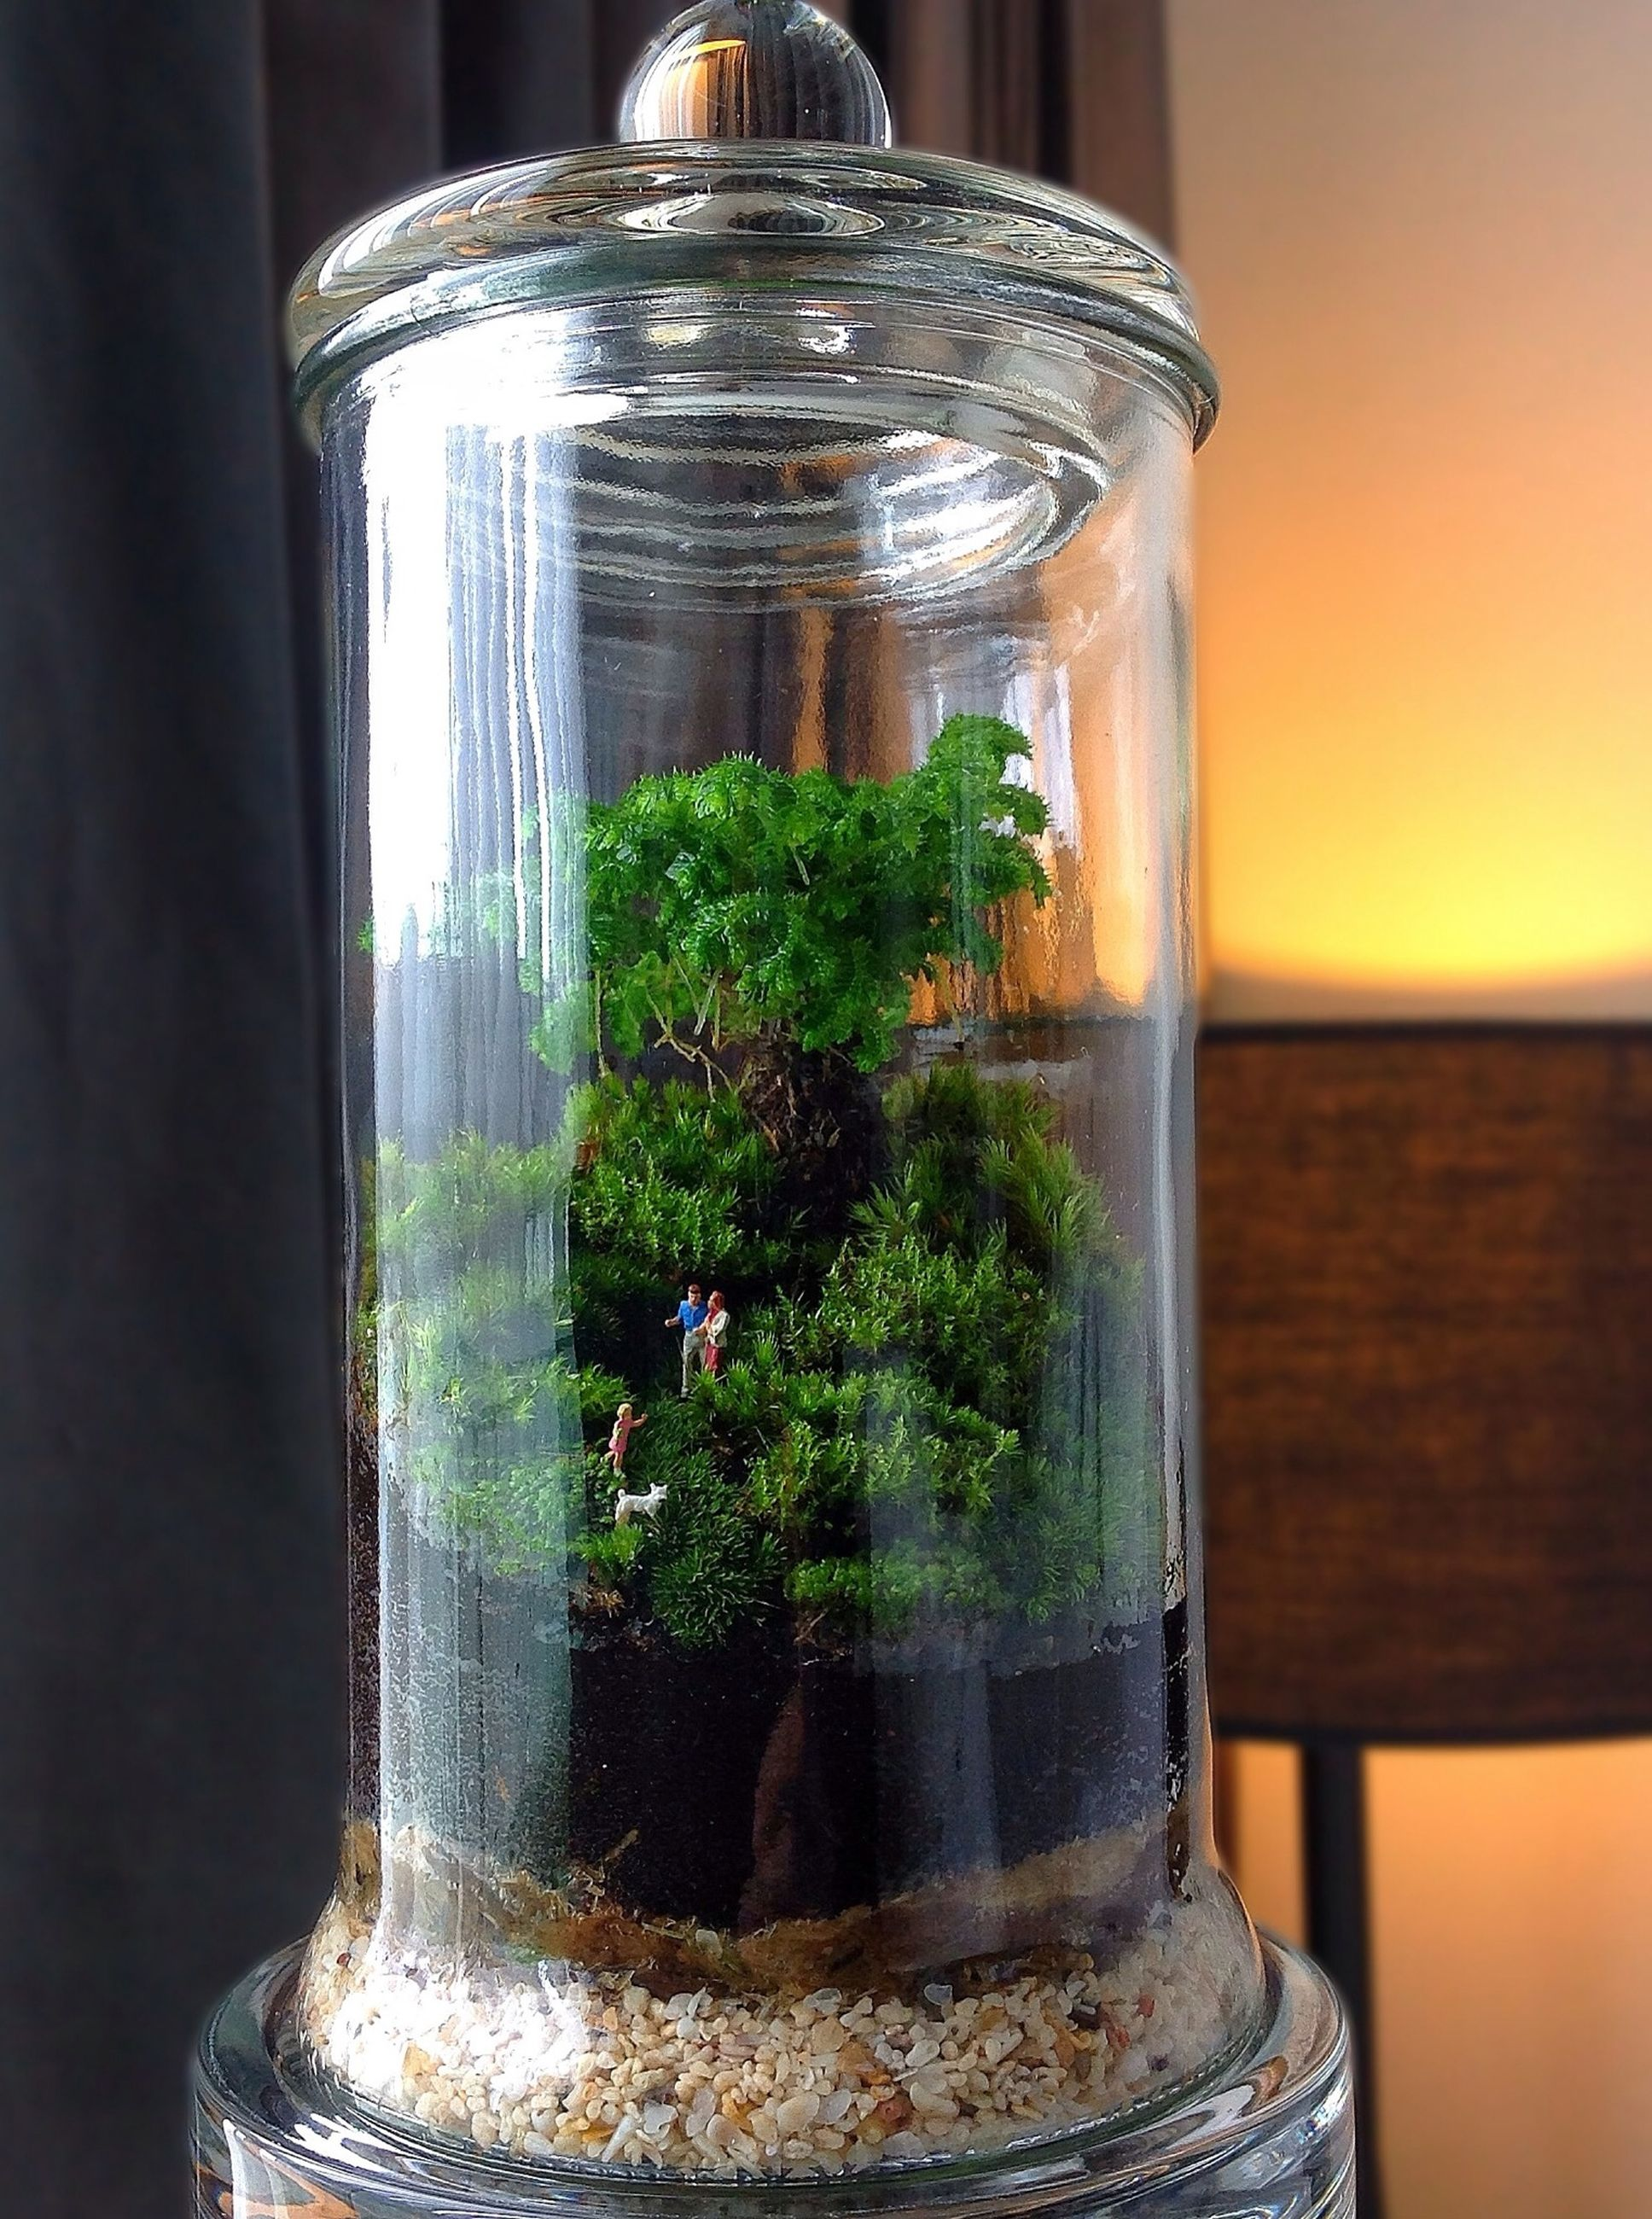 glass - material, growth, indoors, close-up, transparent, plant, focus on foreground, potted plant, green color, window, no people, water, wood - material, nature, flower, day, built structure, vase, home interior, fragility